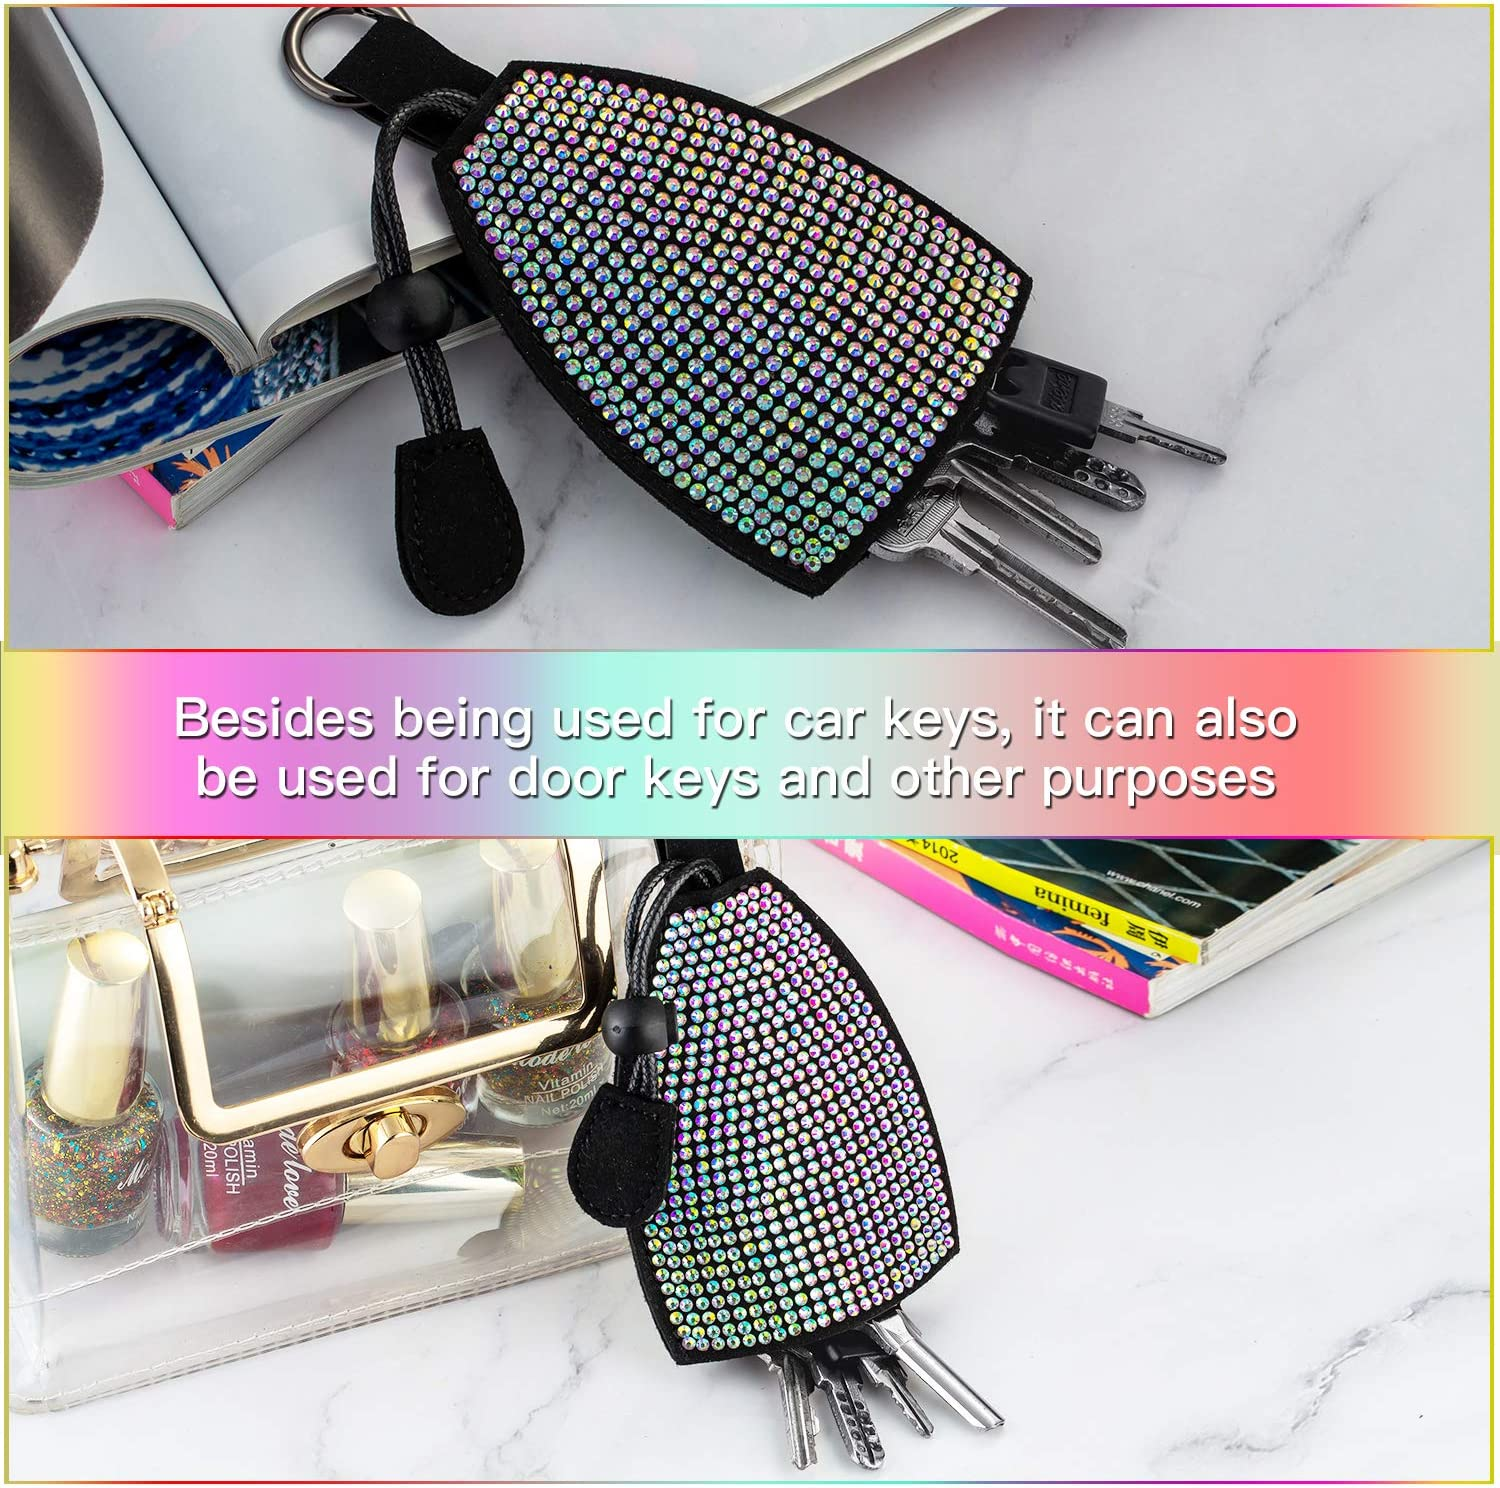 ZAKRA Car Key Chain Car Key Leather Case with Bling Bling Crystal Rhinestones,Key Pouch for Women Girls Colorful Diamonds